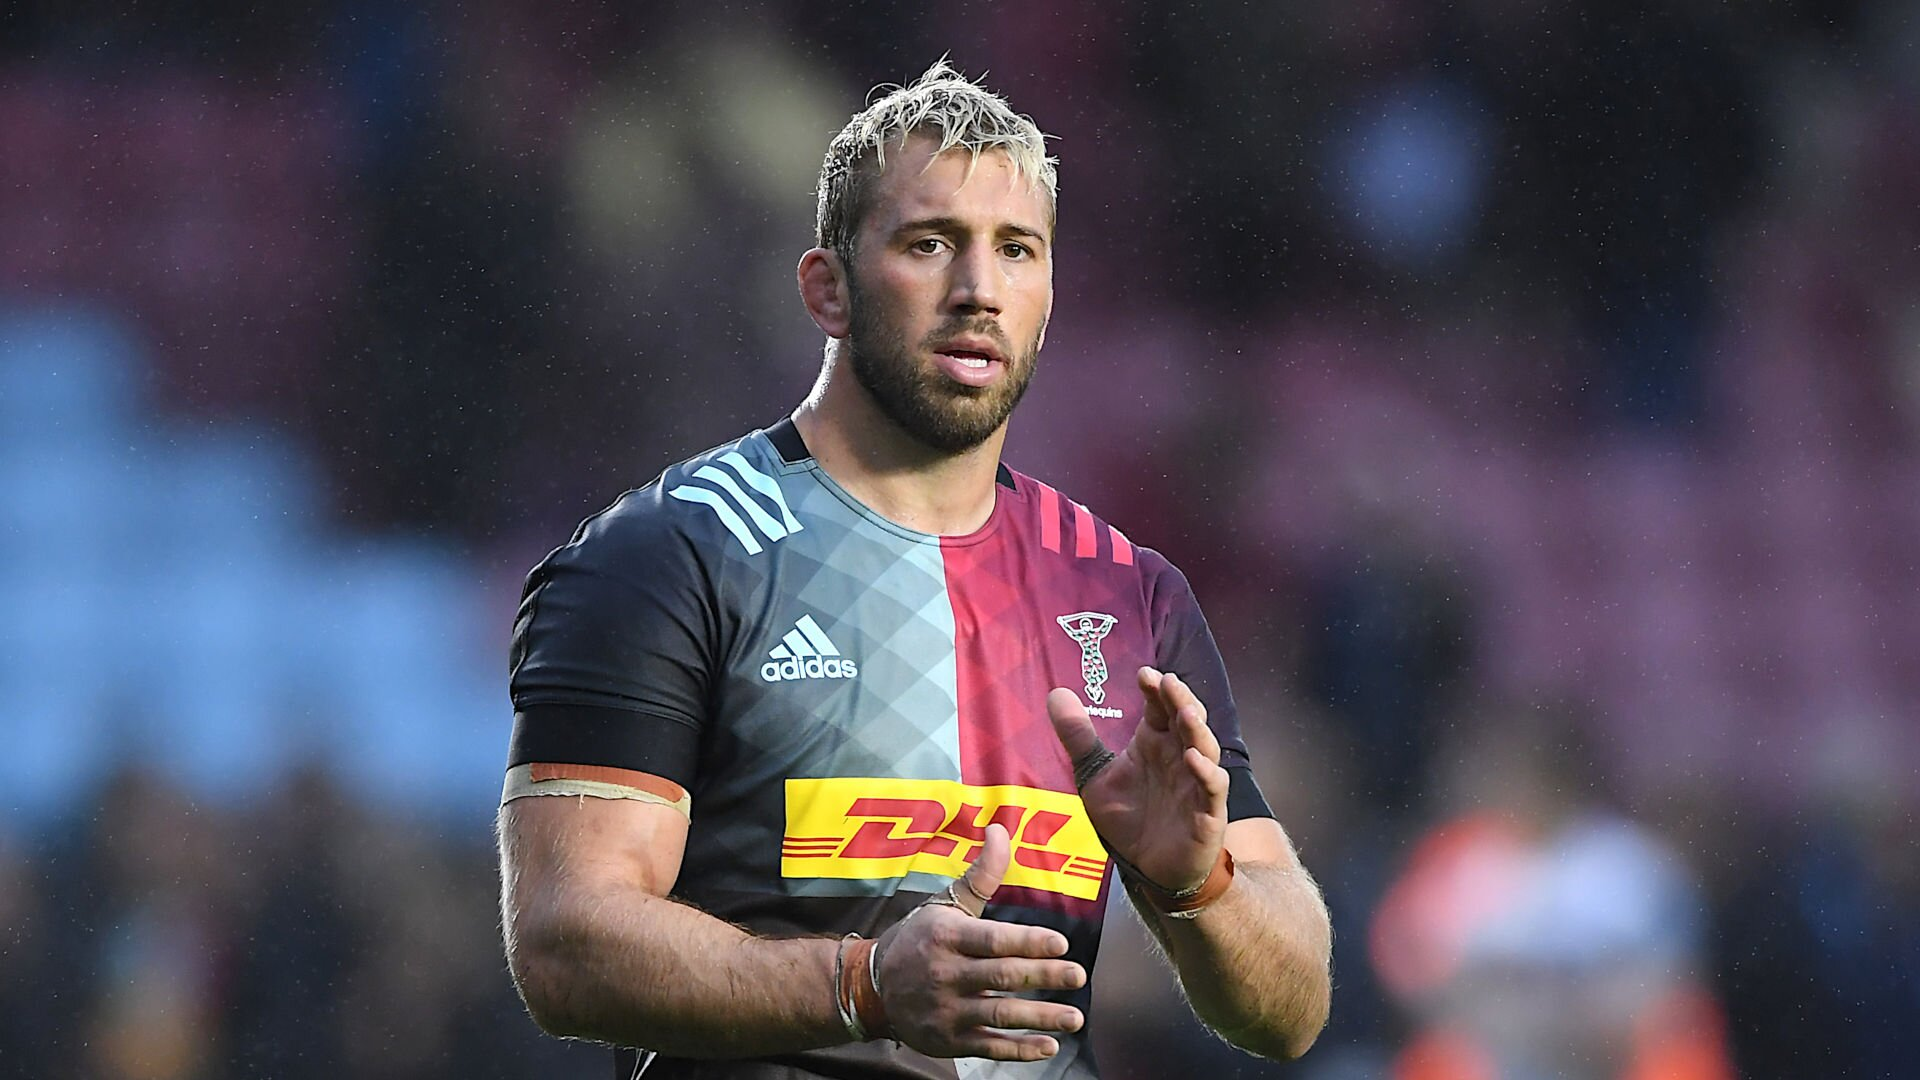 Harlequins captain Robshaw one of two ruled out through illness for Exeter